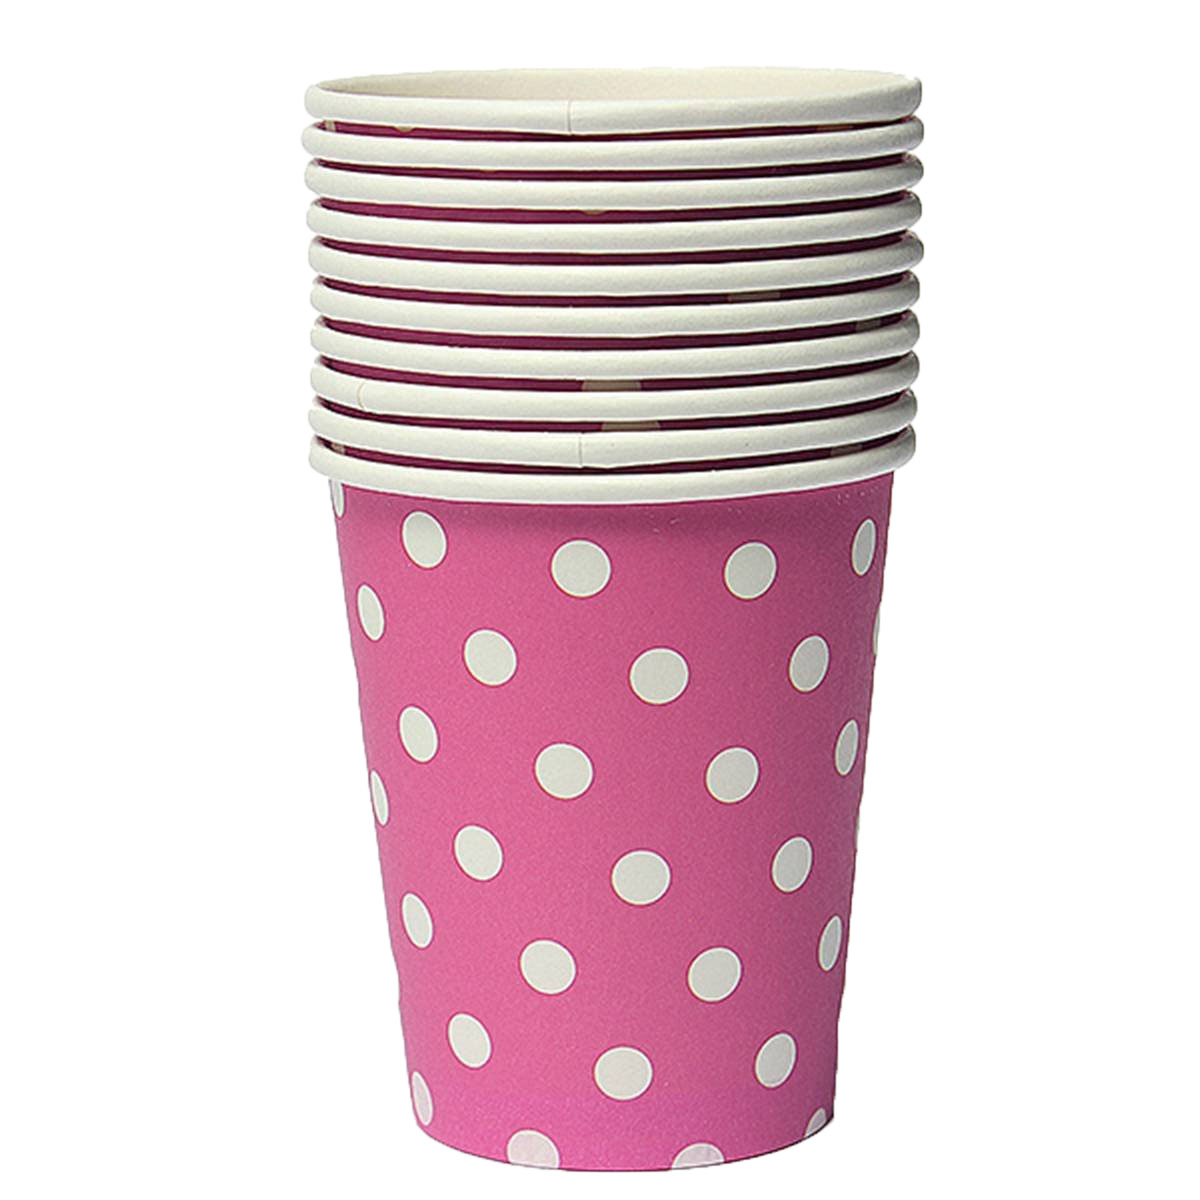 NHBR 50pcs Polka Dot Paper Cups Case Disposable Tableware Wedding Birthday Decorations Pink